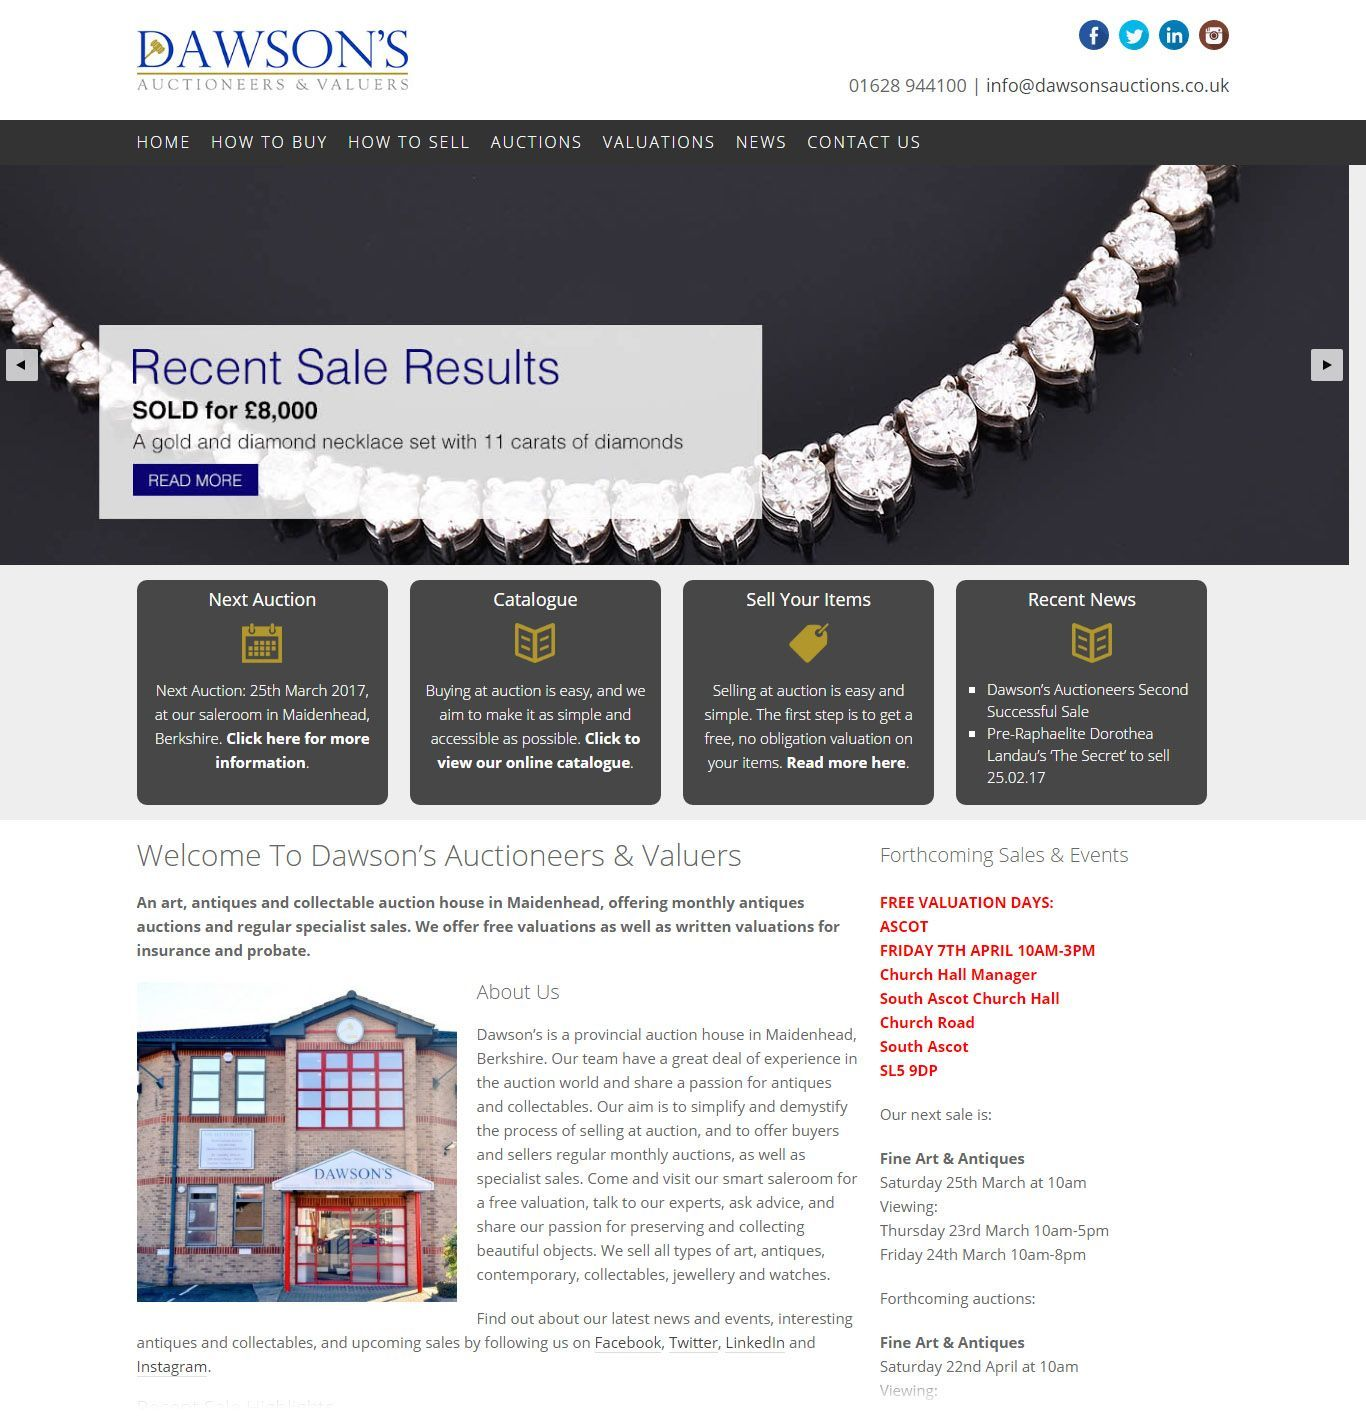 dawsons-auctions-website-design